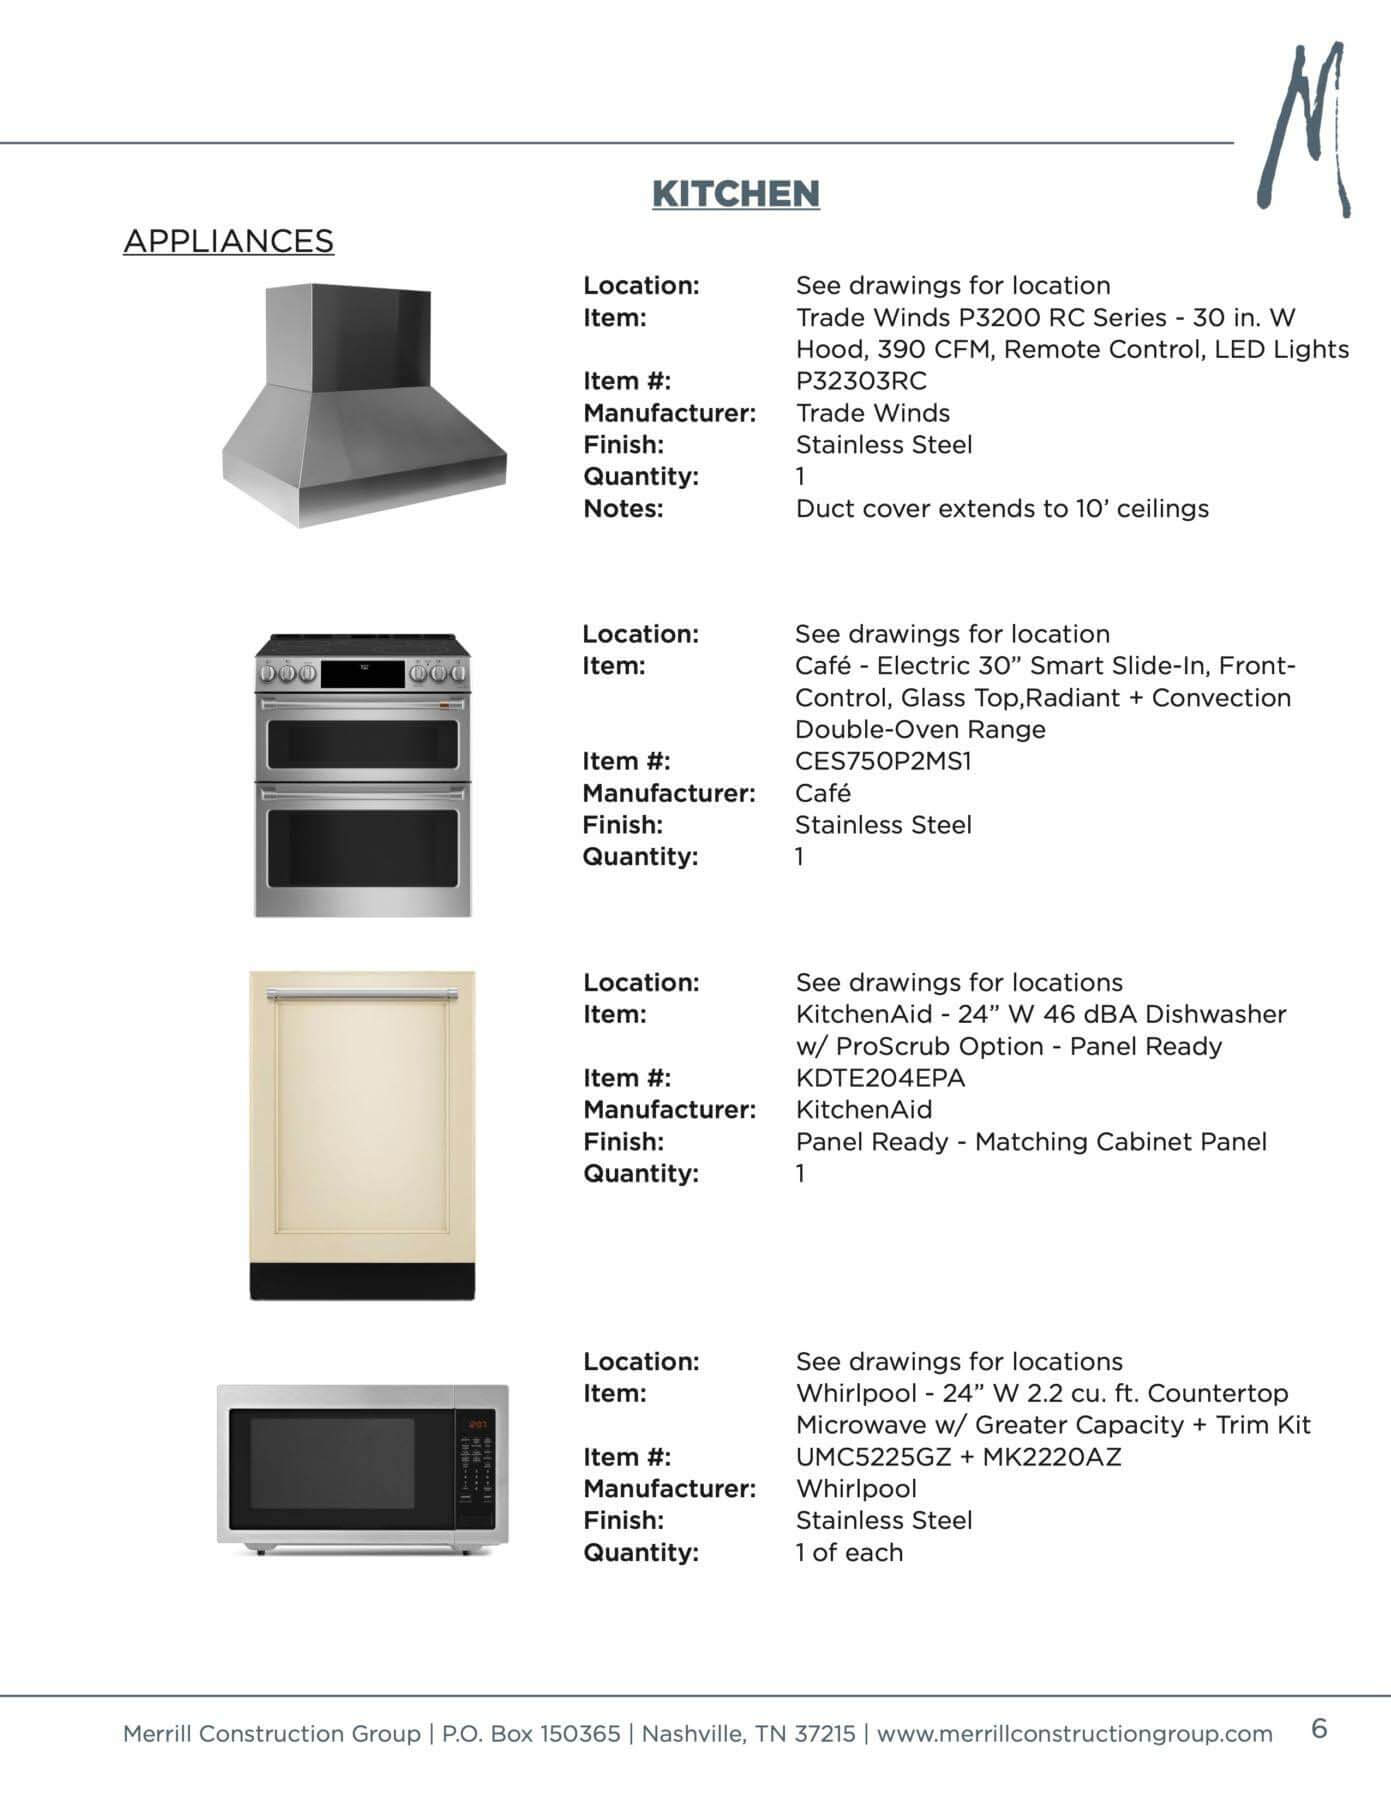 Selection sheet for products for the kitchen renovation